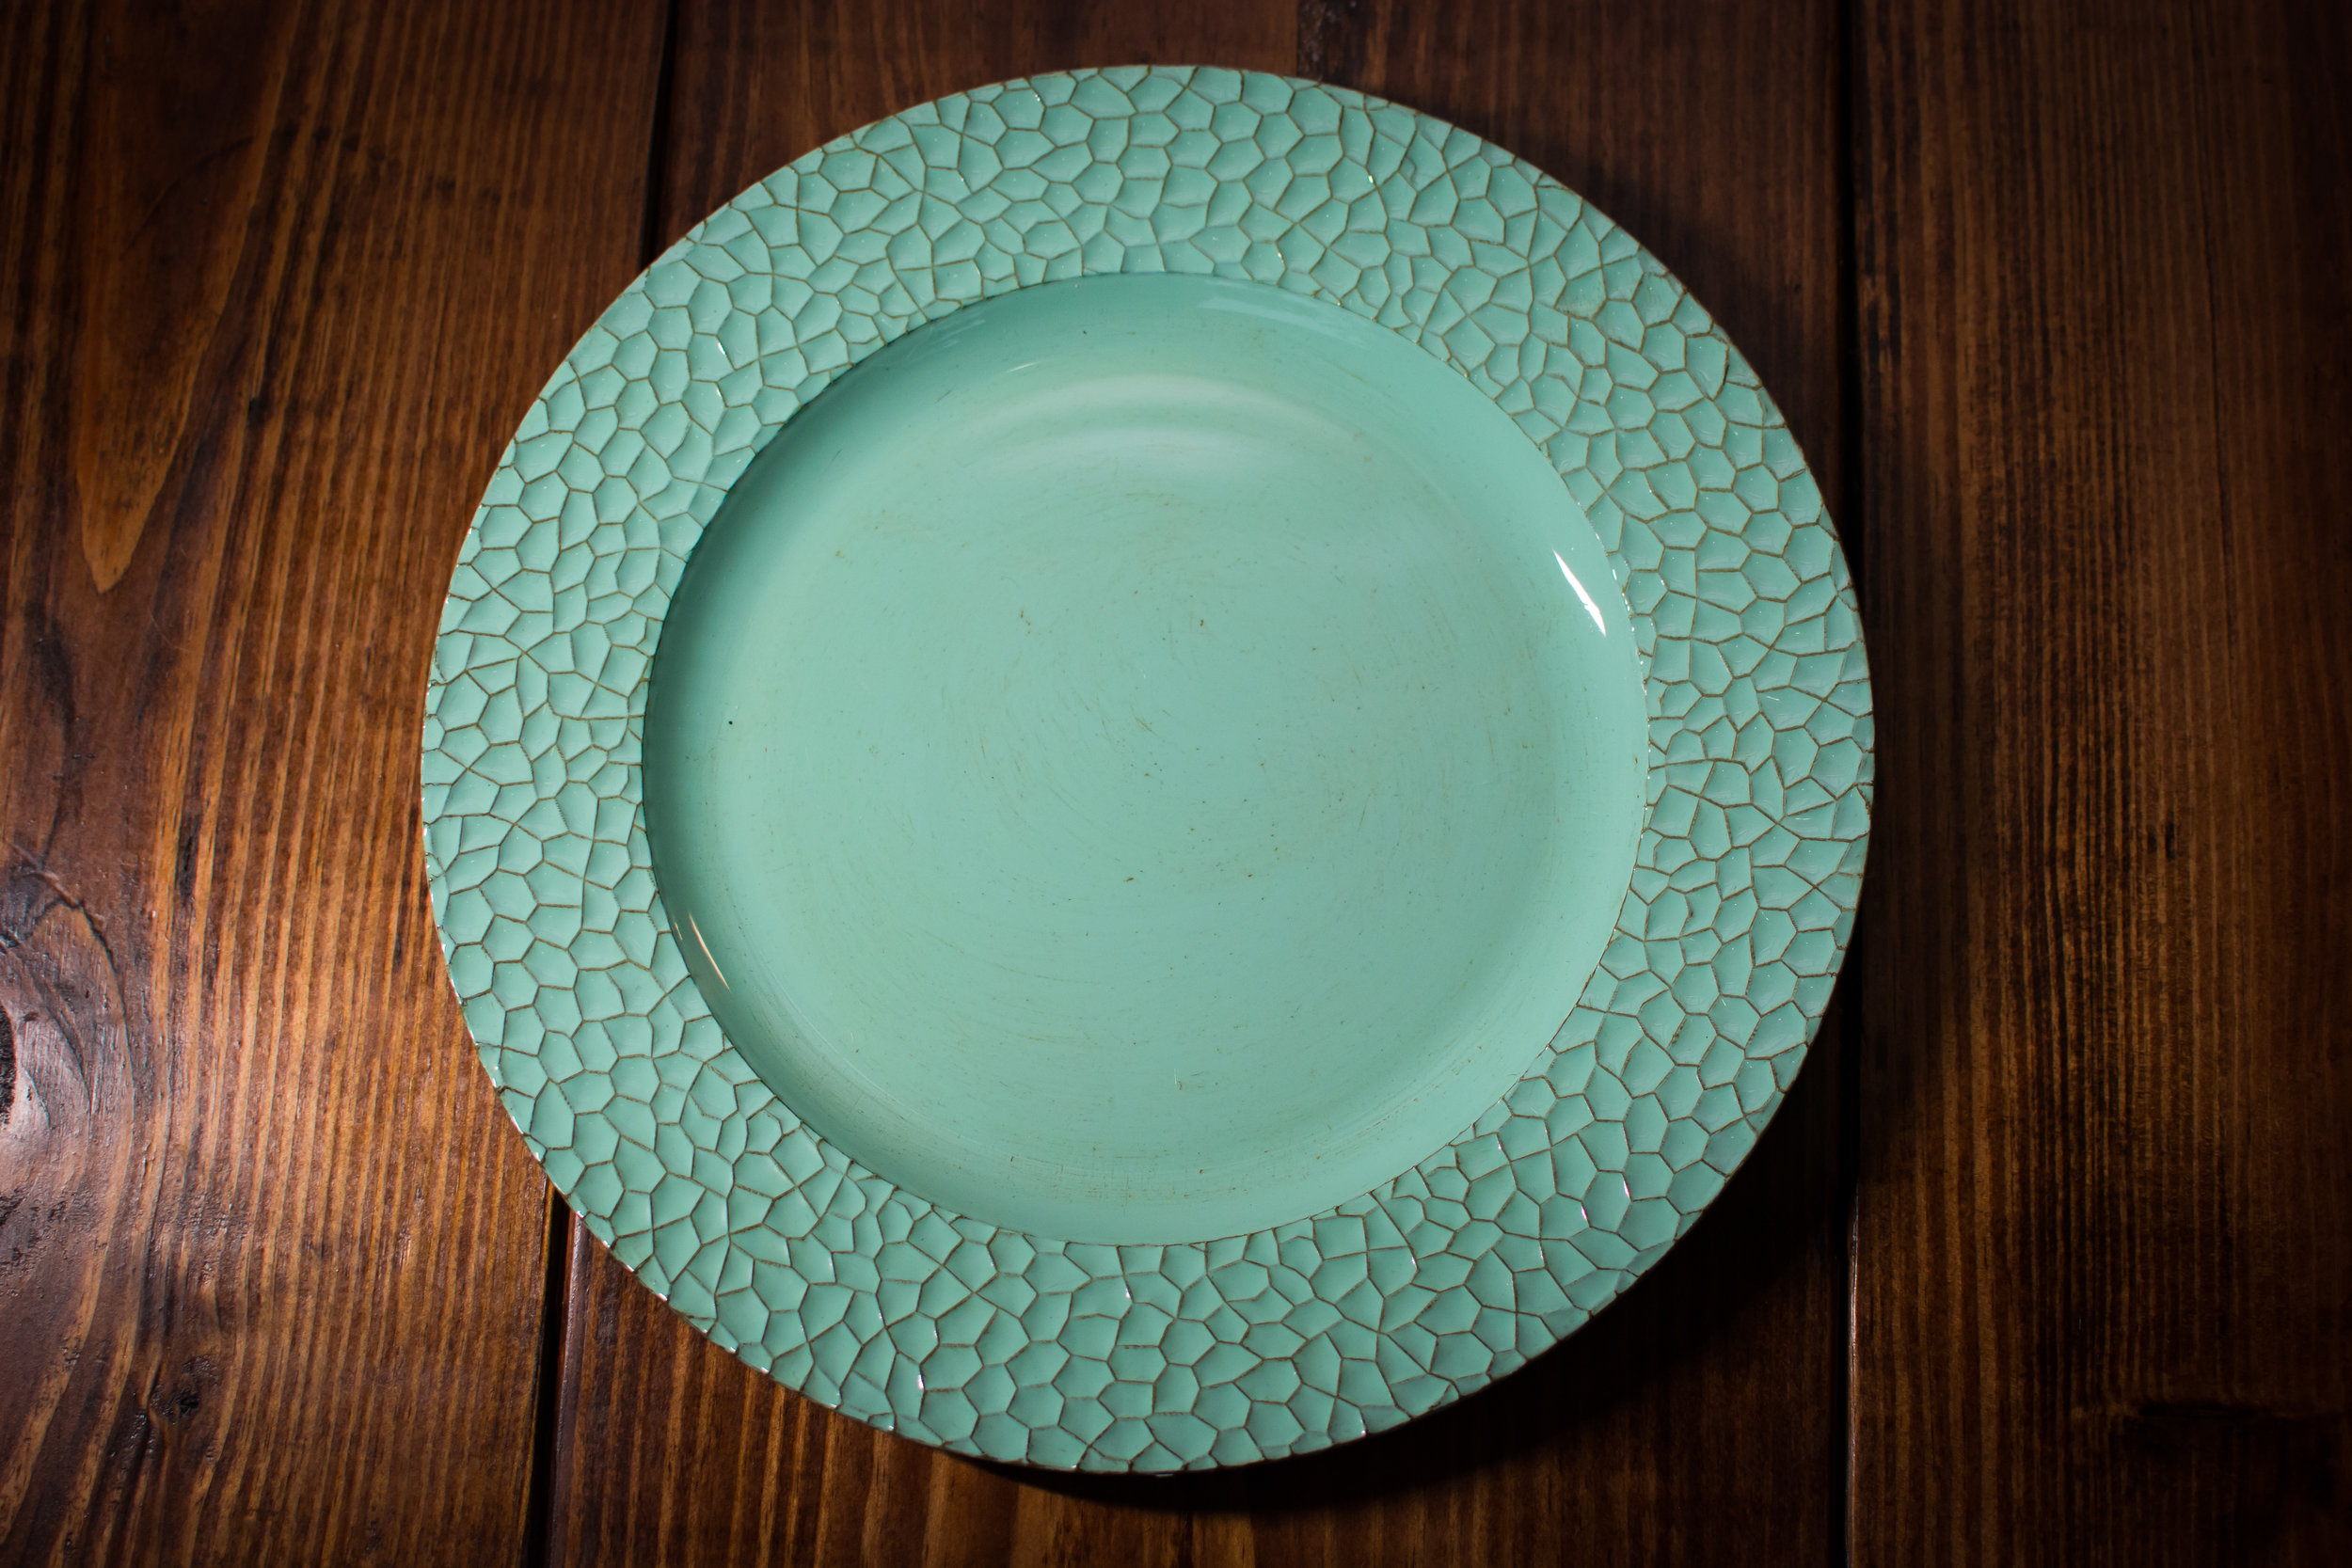 teal charger plate   Material: acrylic  $1.50 Per Plate  Inquire about quantity and availability